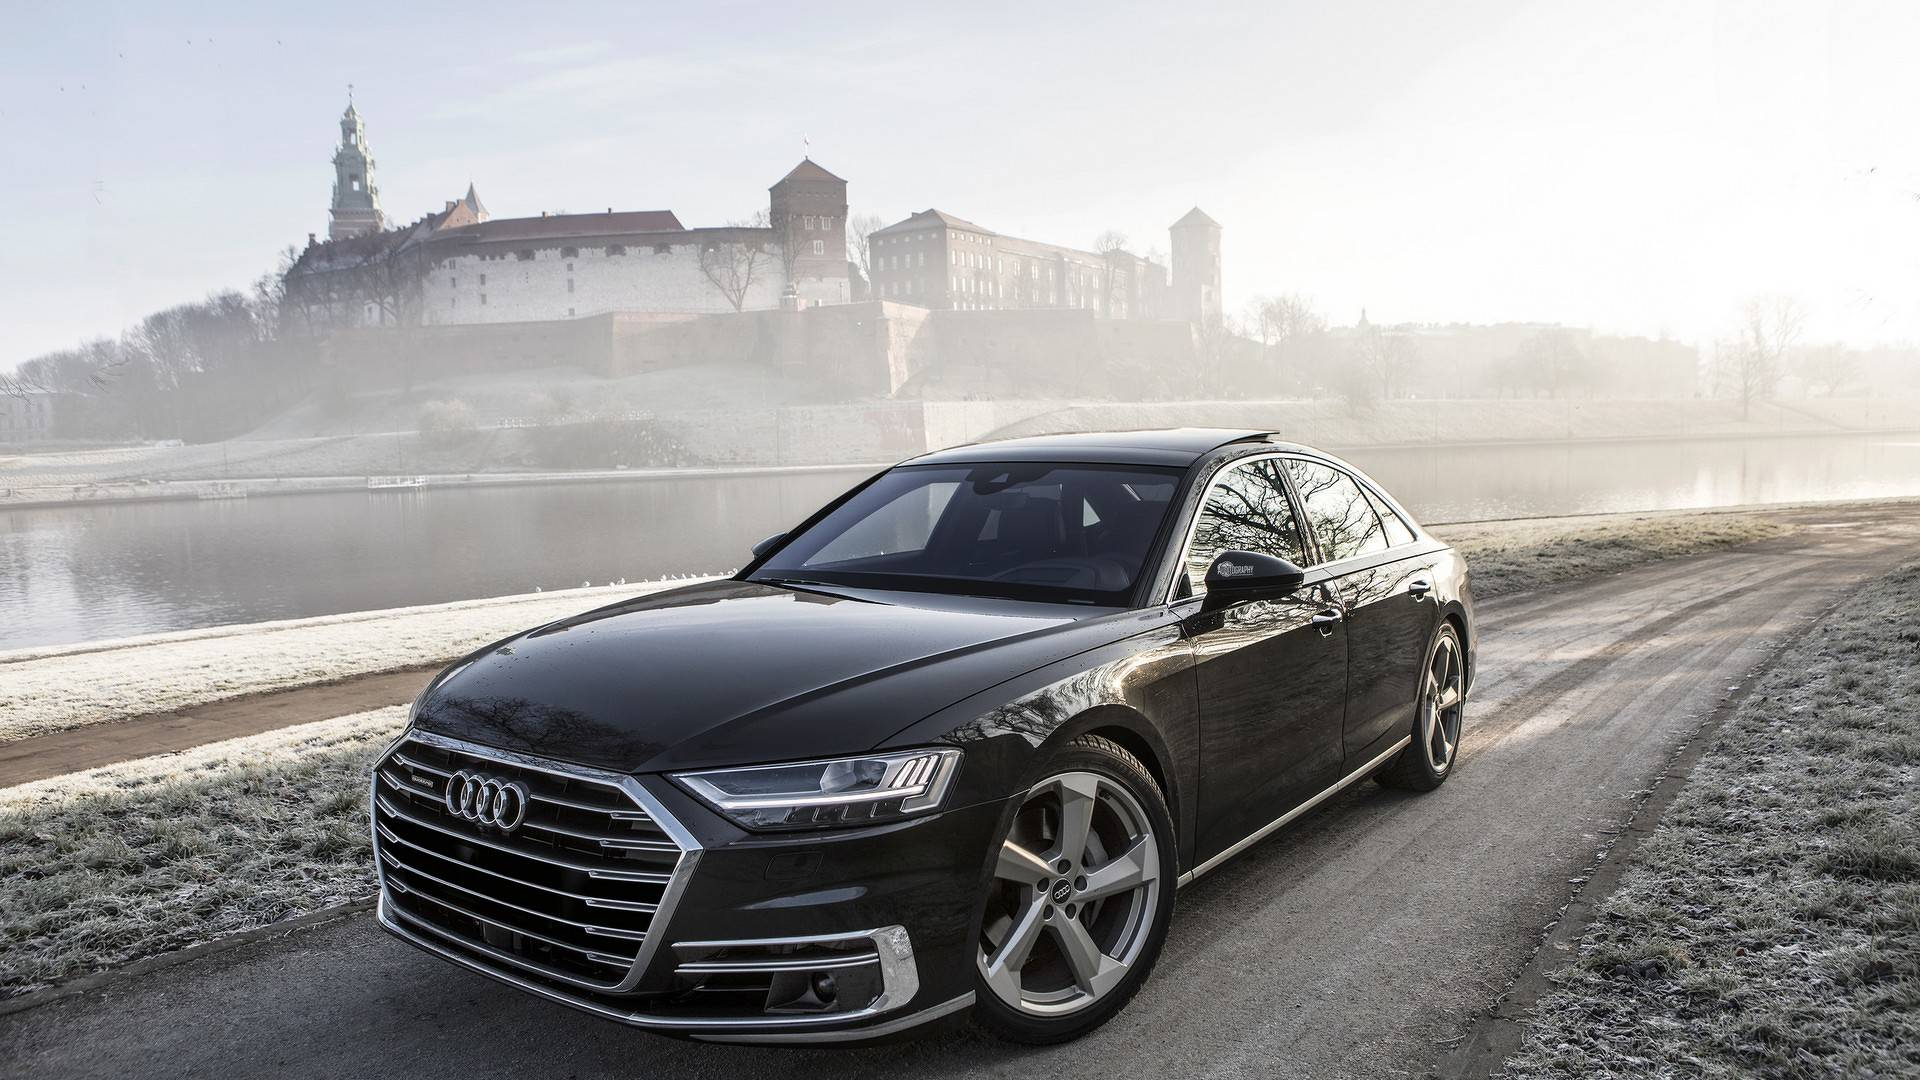 Find Out How Quick The V GasPowered New Audi A Is - A8 audi